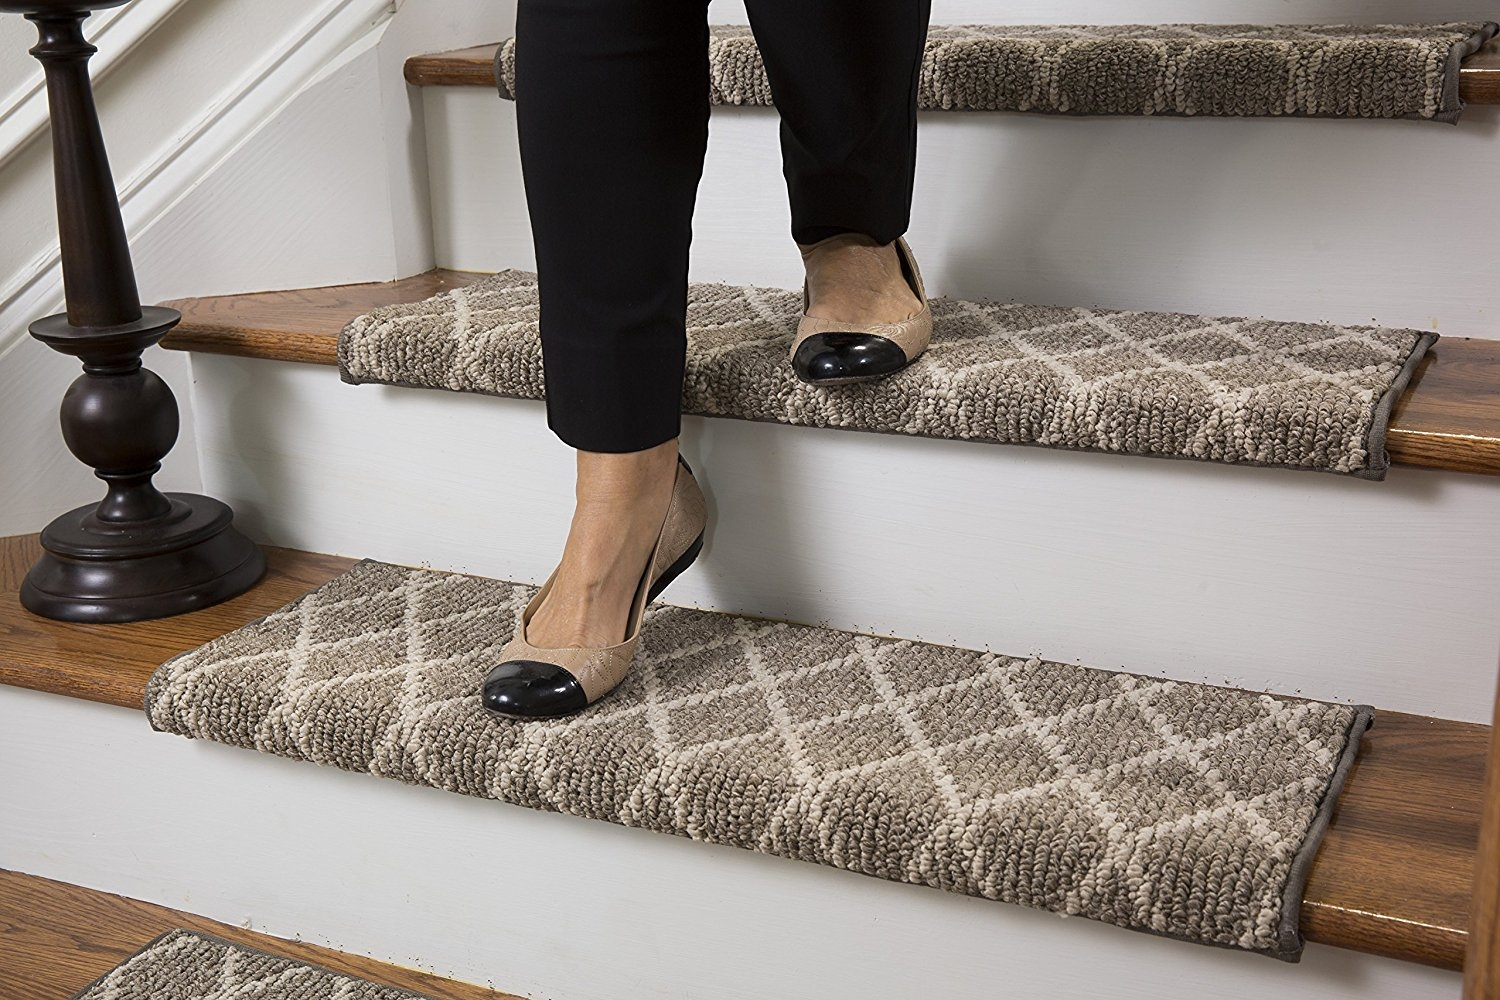 Amazon Jardin Wool Inspired Bullnose Carpet Stair Tread With Throughout Bullnose Stair Tread Carpets (Image 4 of 15)